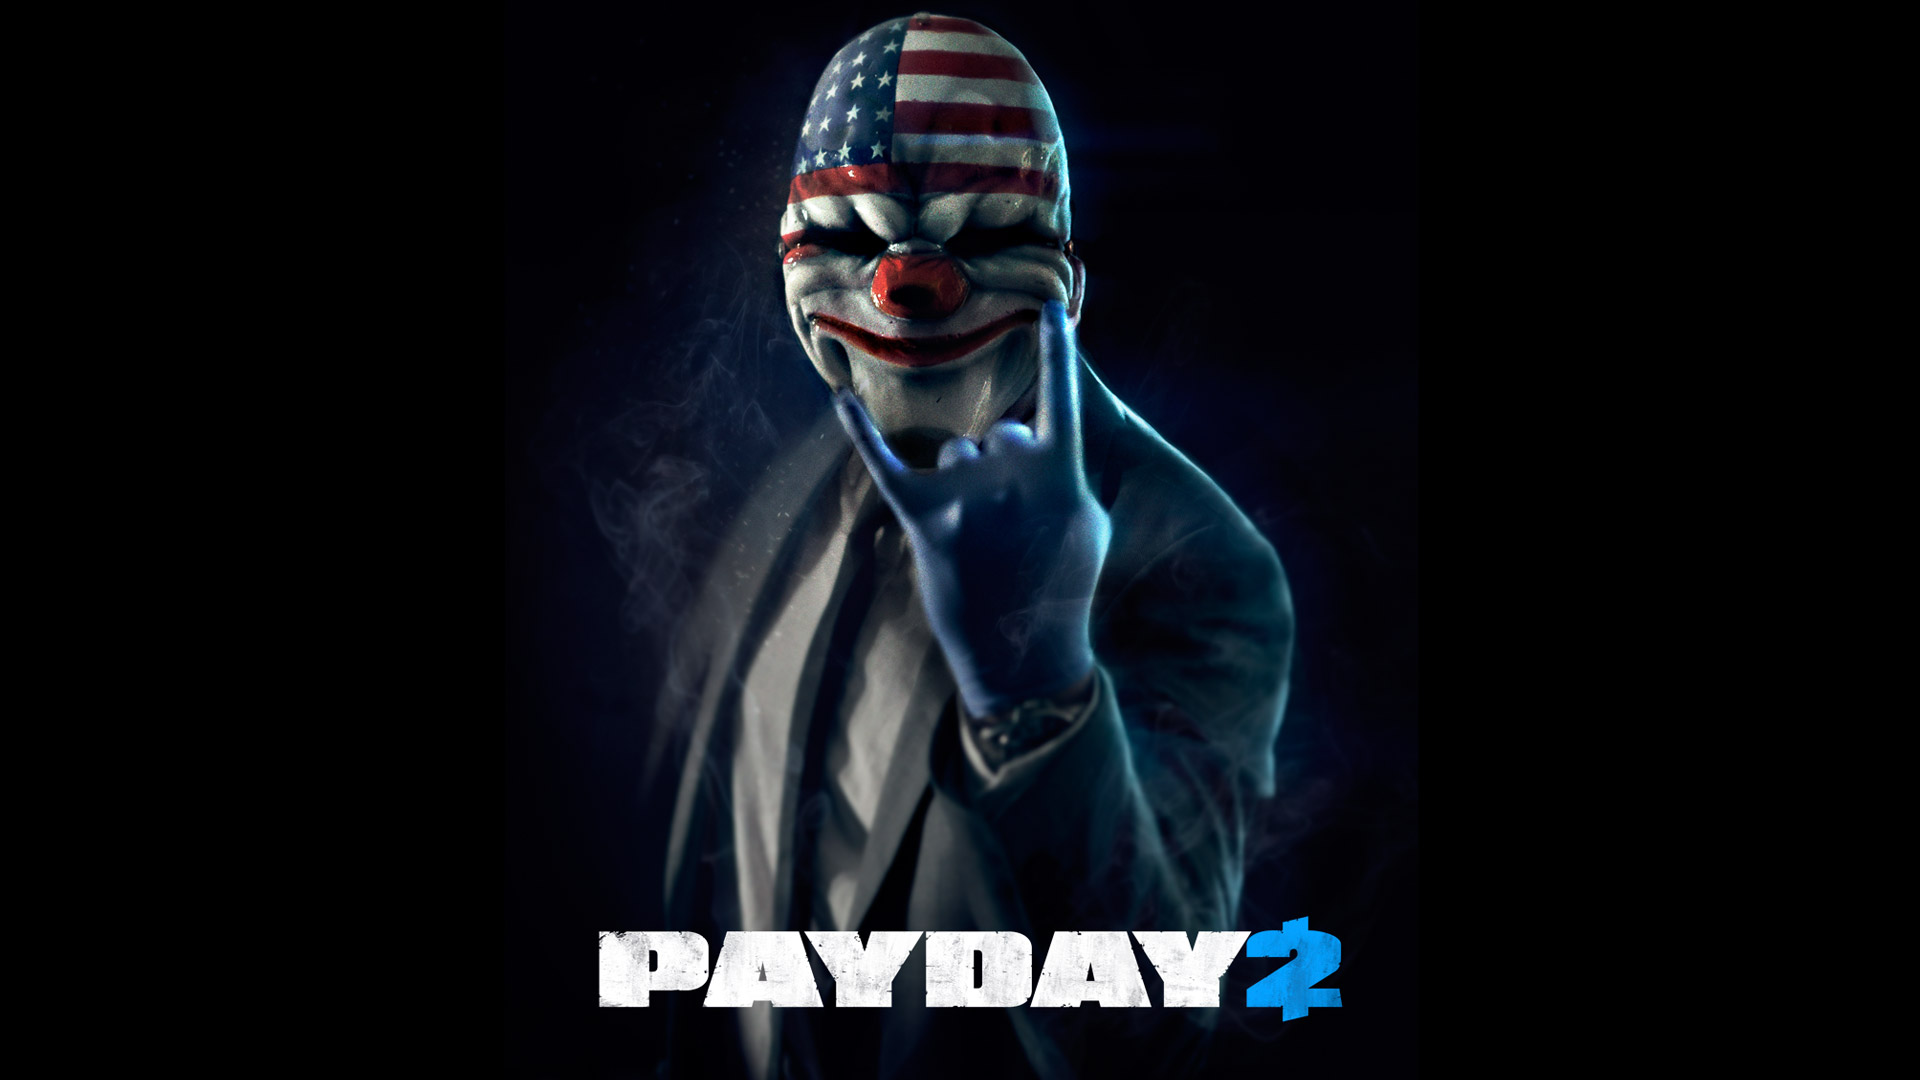 Free Payday 2 Wallpaper in 1920x1080